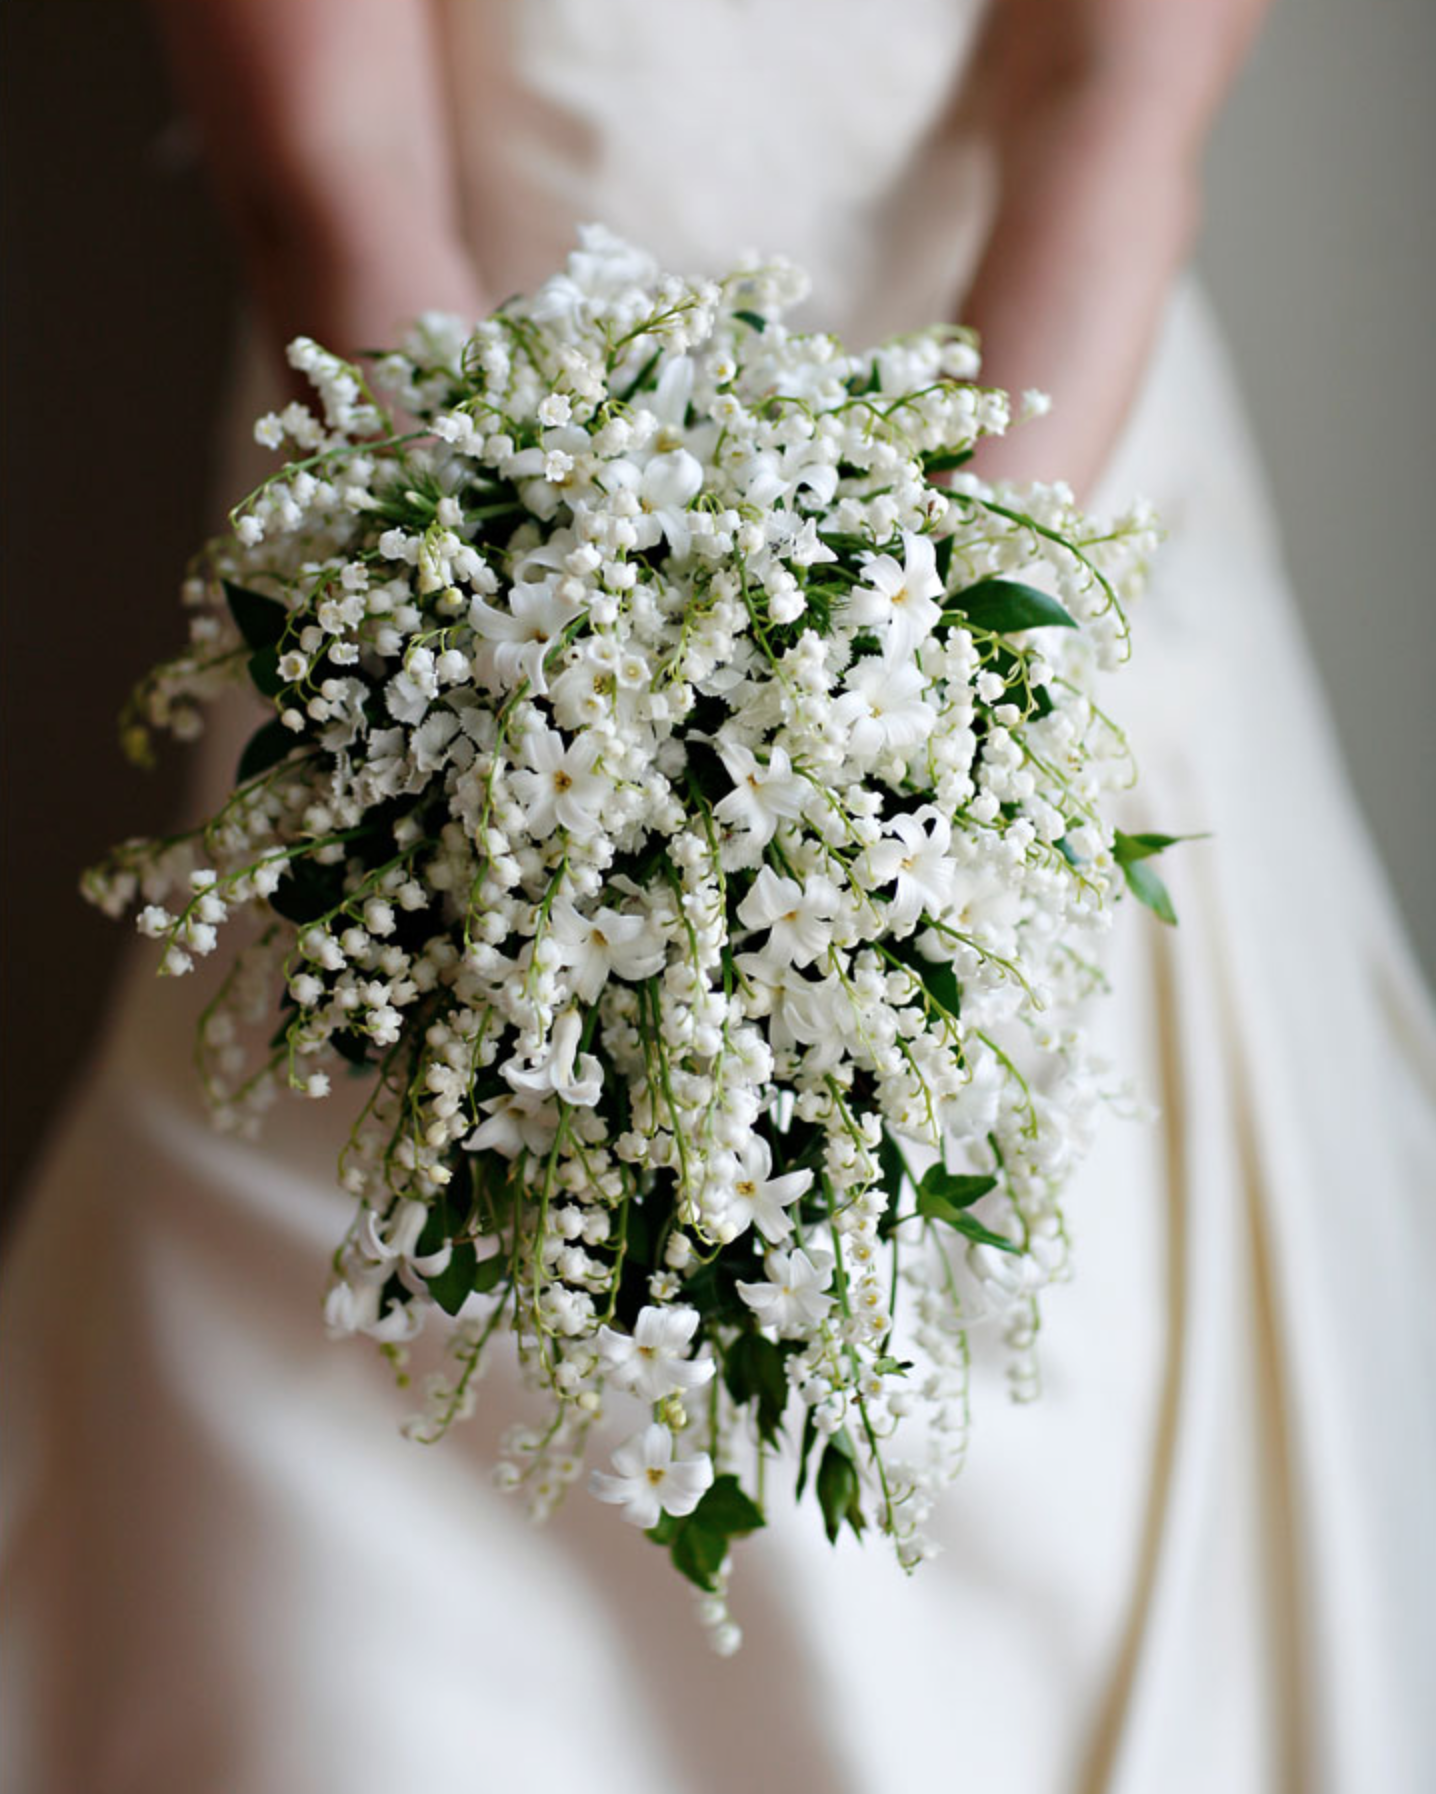 The Royal Wedding Creates Lily Of The Valley Trend That You Can